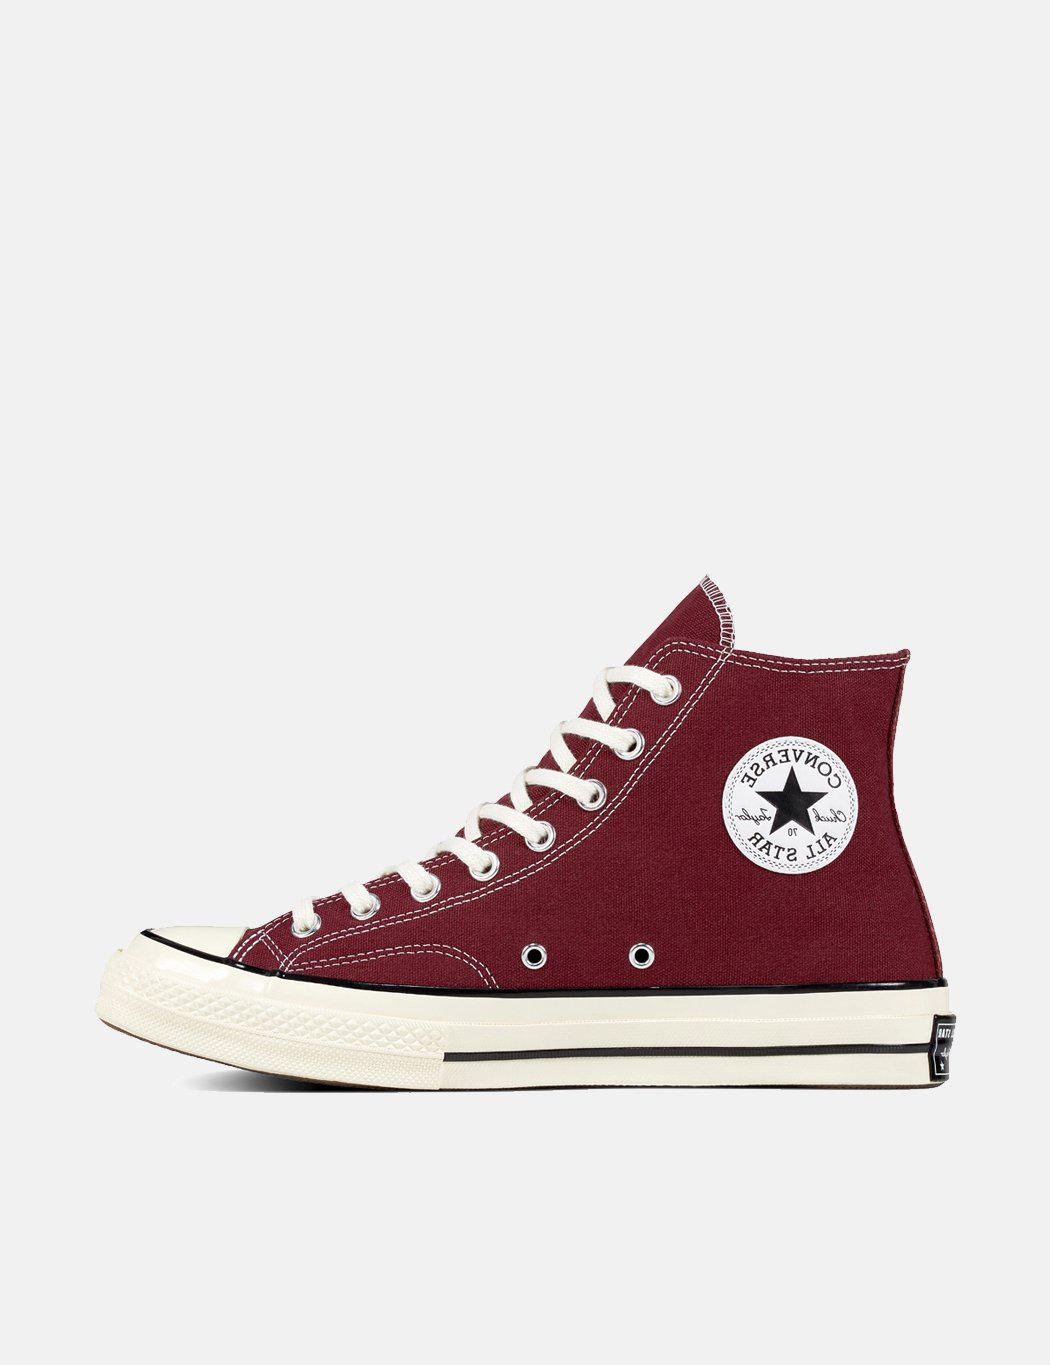 Lyst - Converse 70 s Chuck Hi 162051c (canvas) in Red for Men abb2d3549